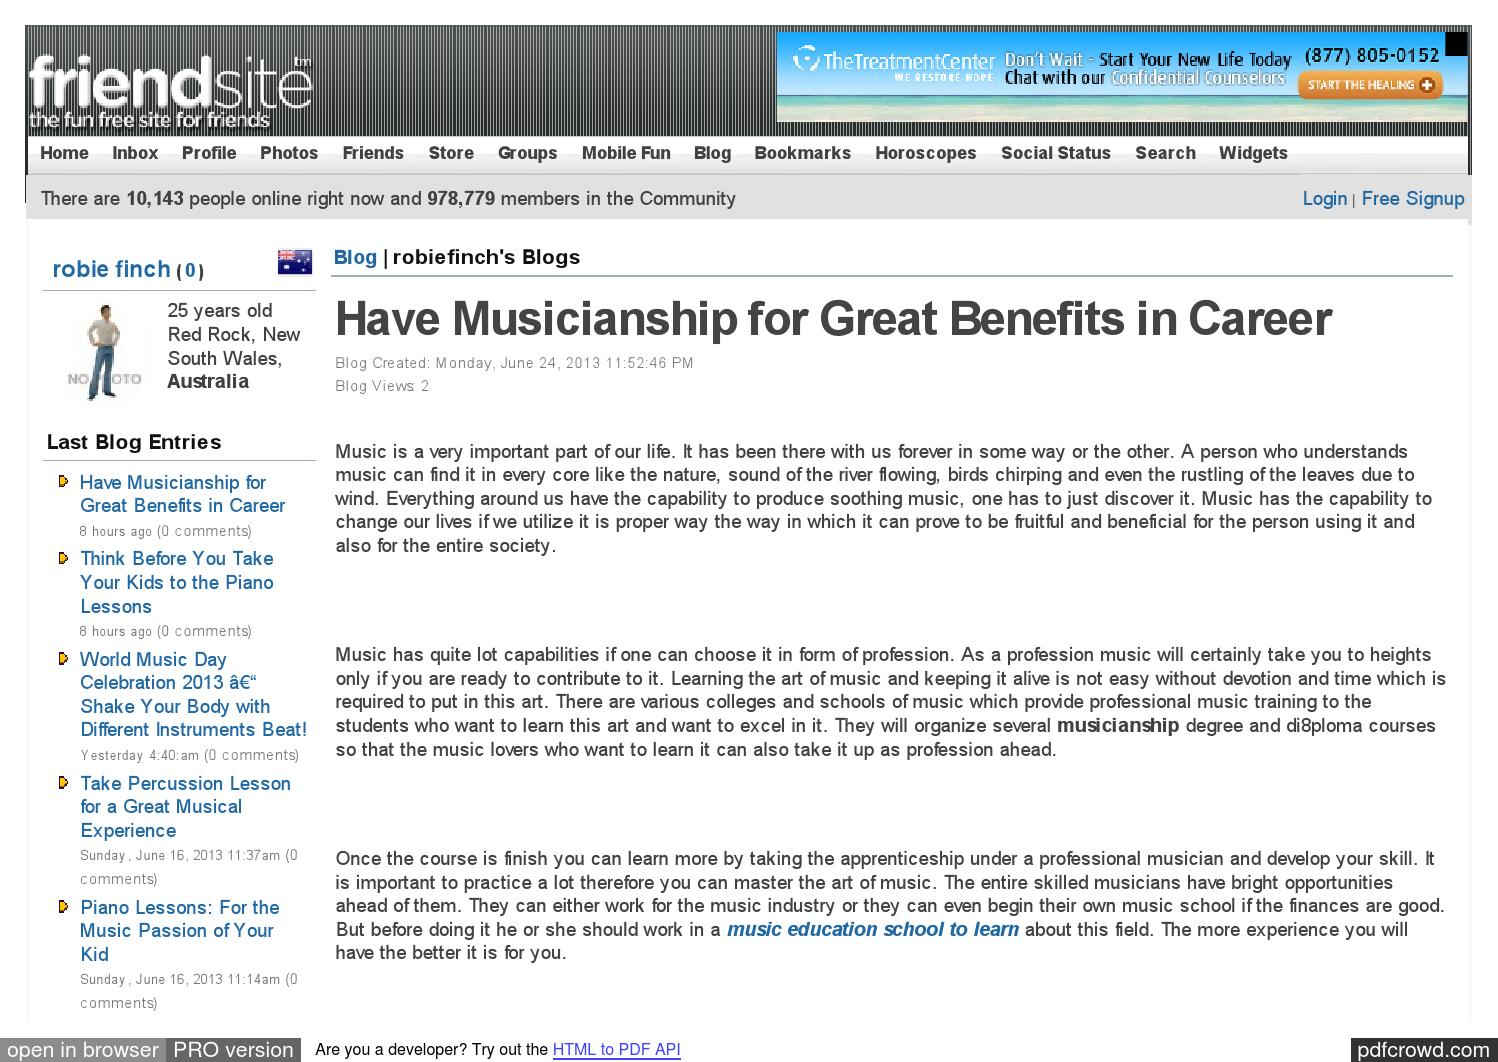 Have musicianship for great benefits in career by robie